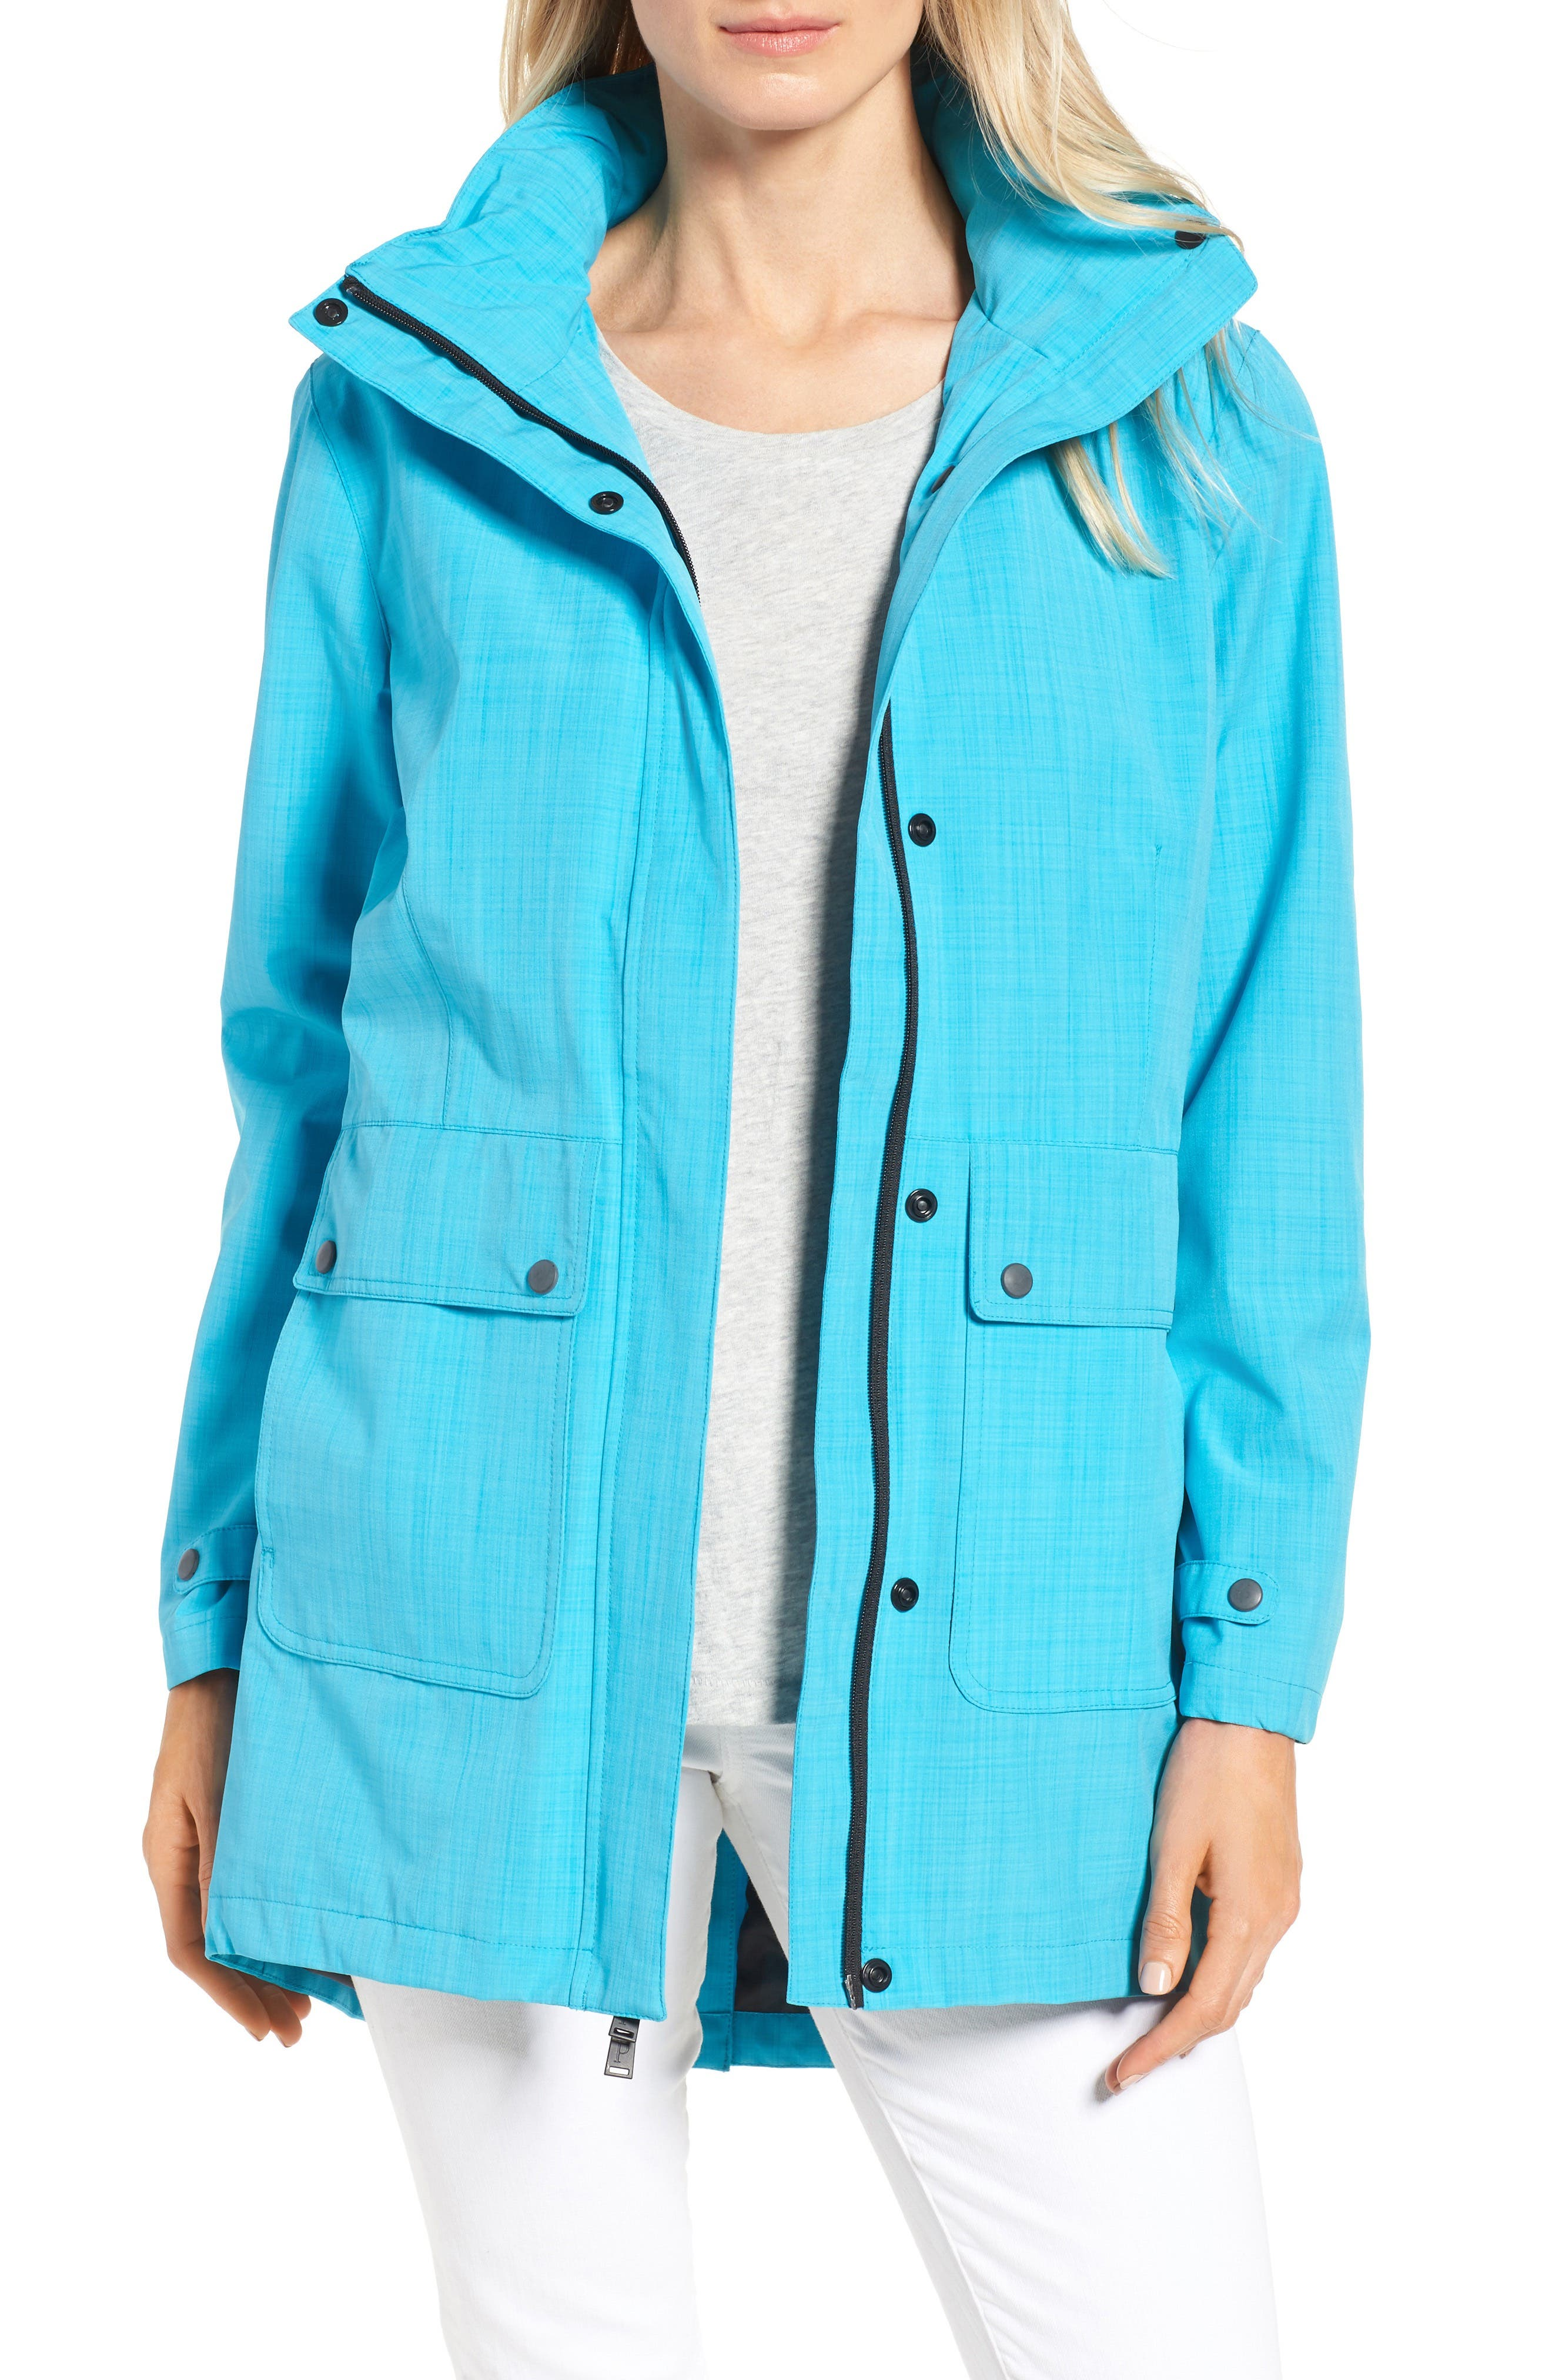 Golden Gate Anorak,                         Main,                         color, 460